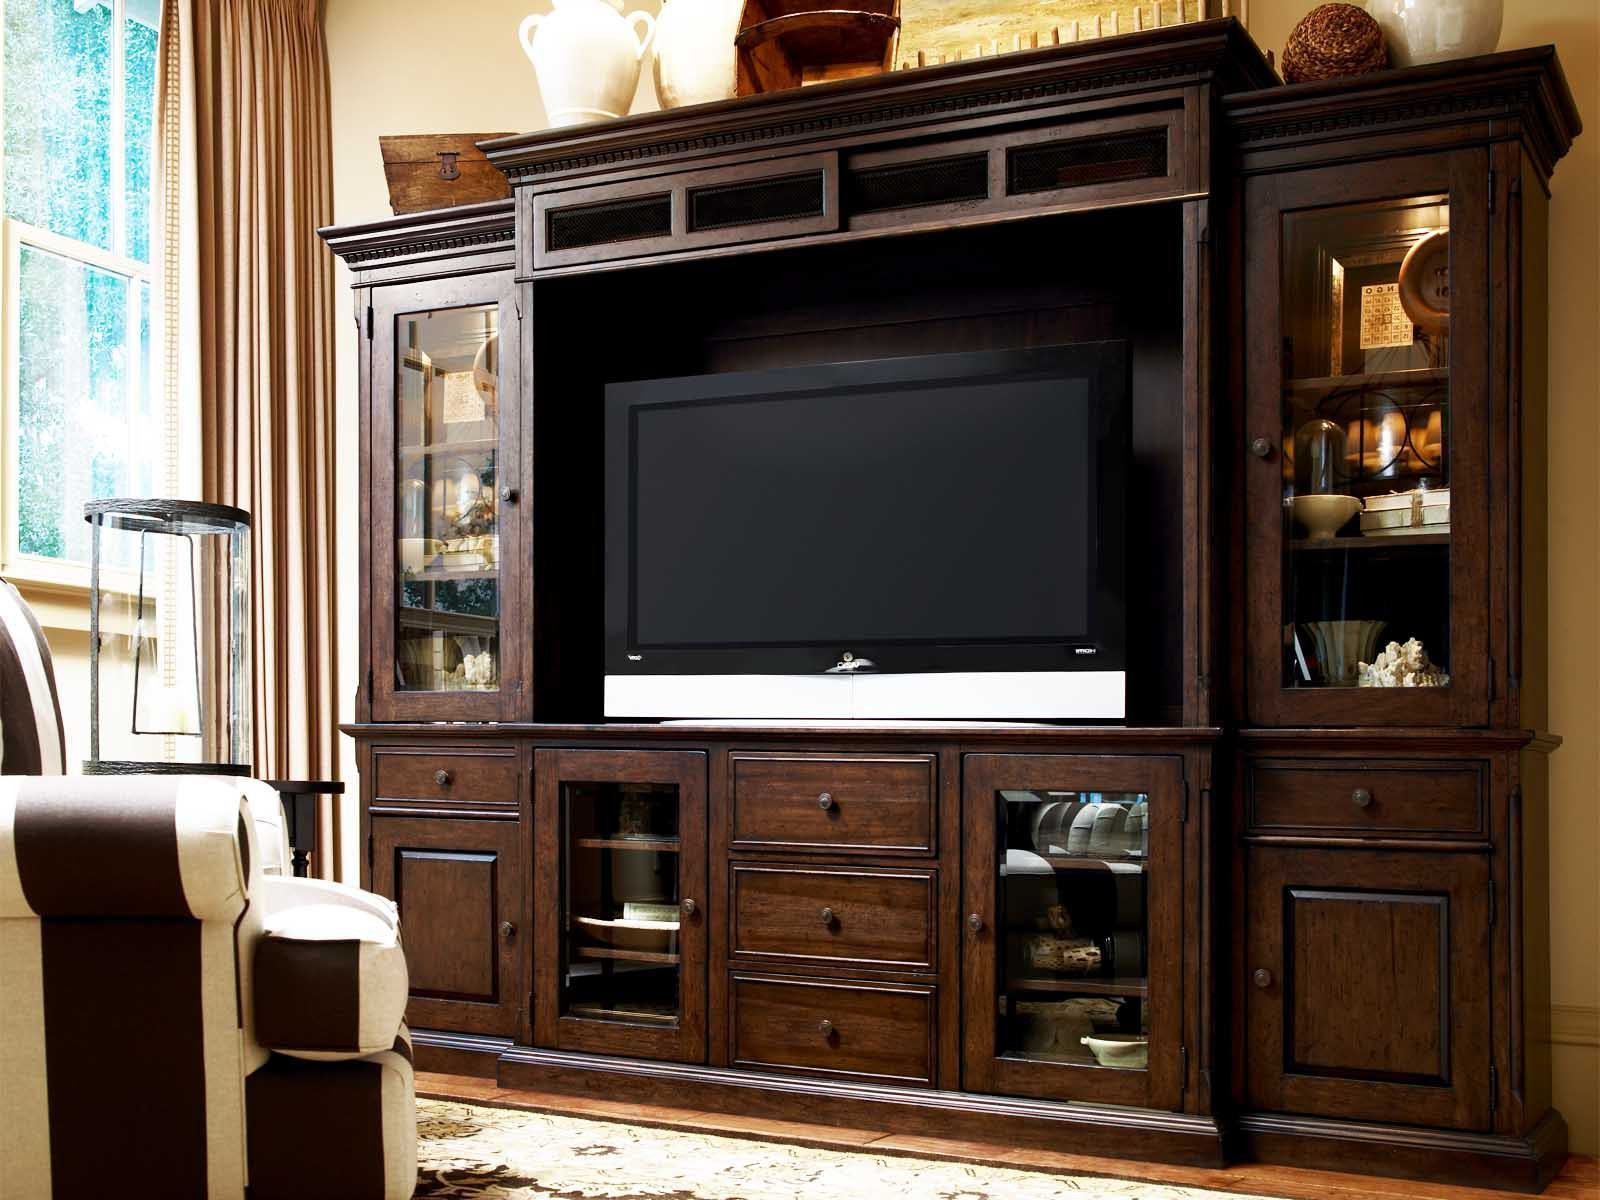 Enclosed Tv Cabinets For Flat Screens With Doors Intended For Well Liked 21 Amazing Living Room Cabinets With Doors Photos (Gallery 20 of 20)